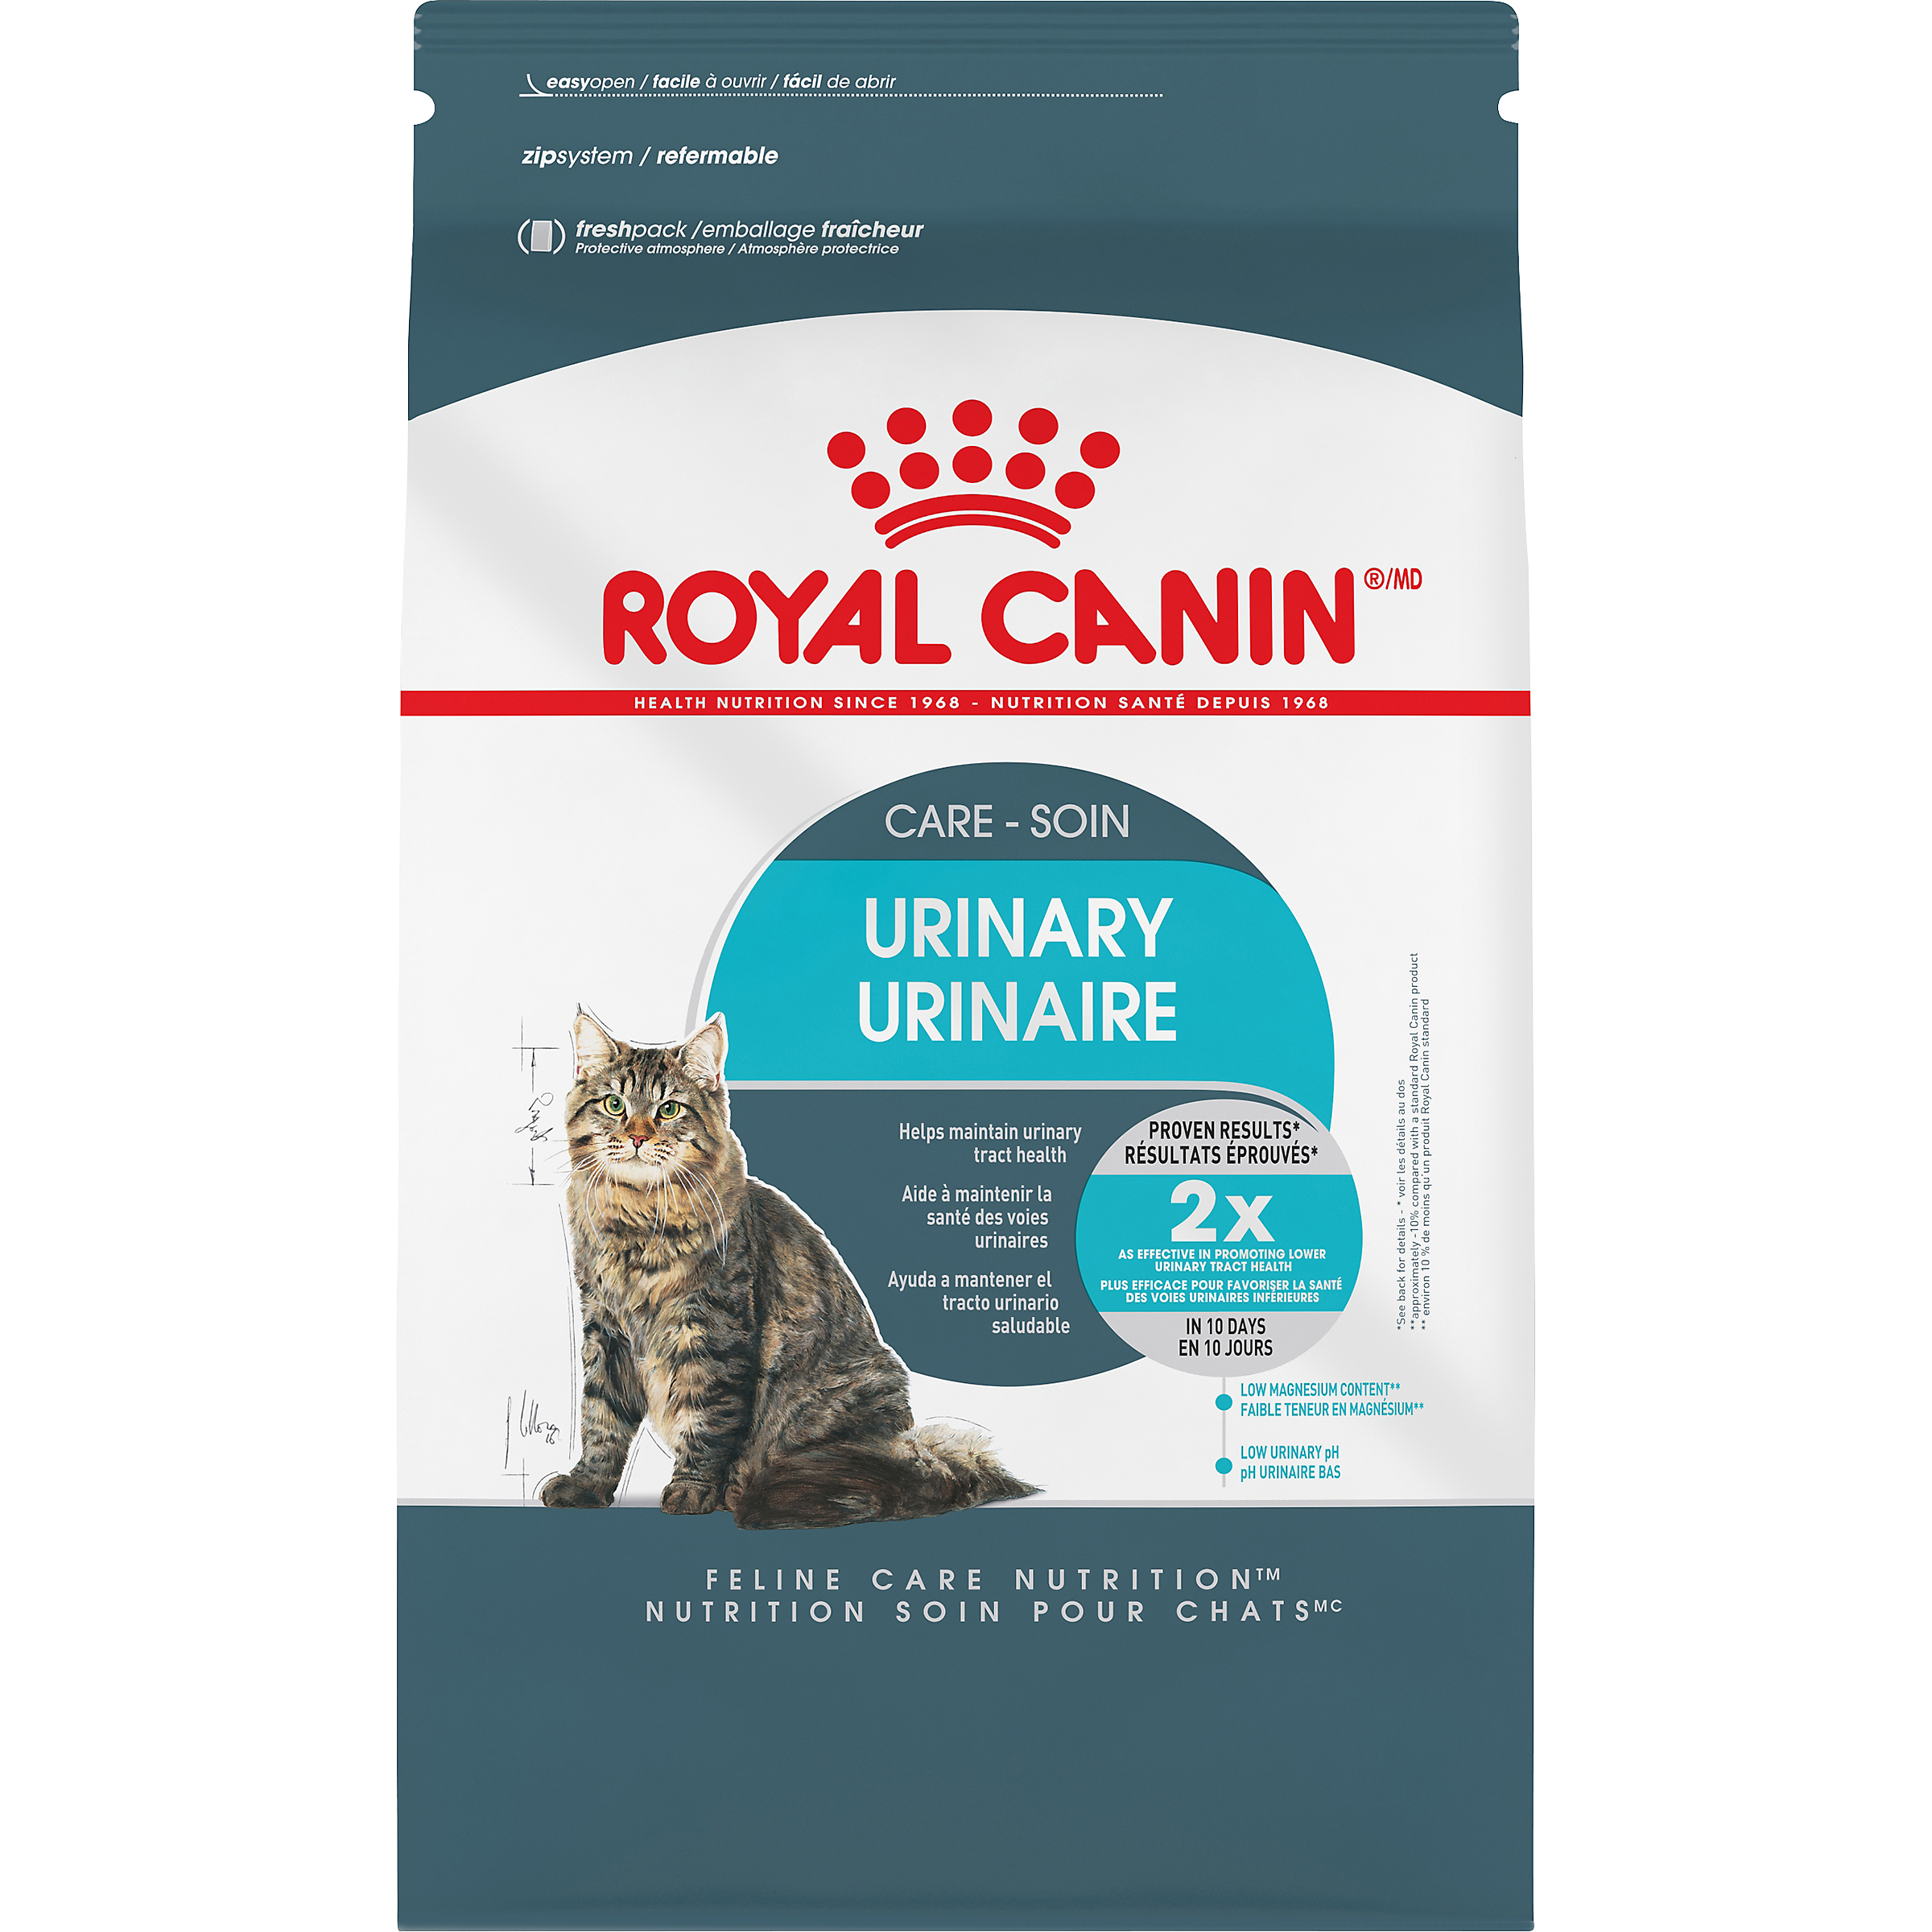 Royal Canin Feline Care Nutrition Urinary Care Adult Dry Cat Food Image